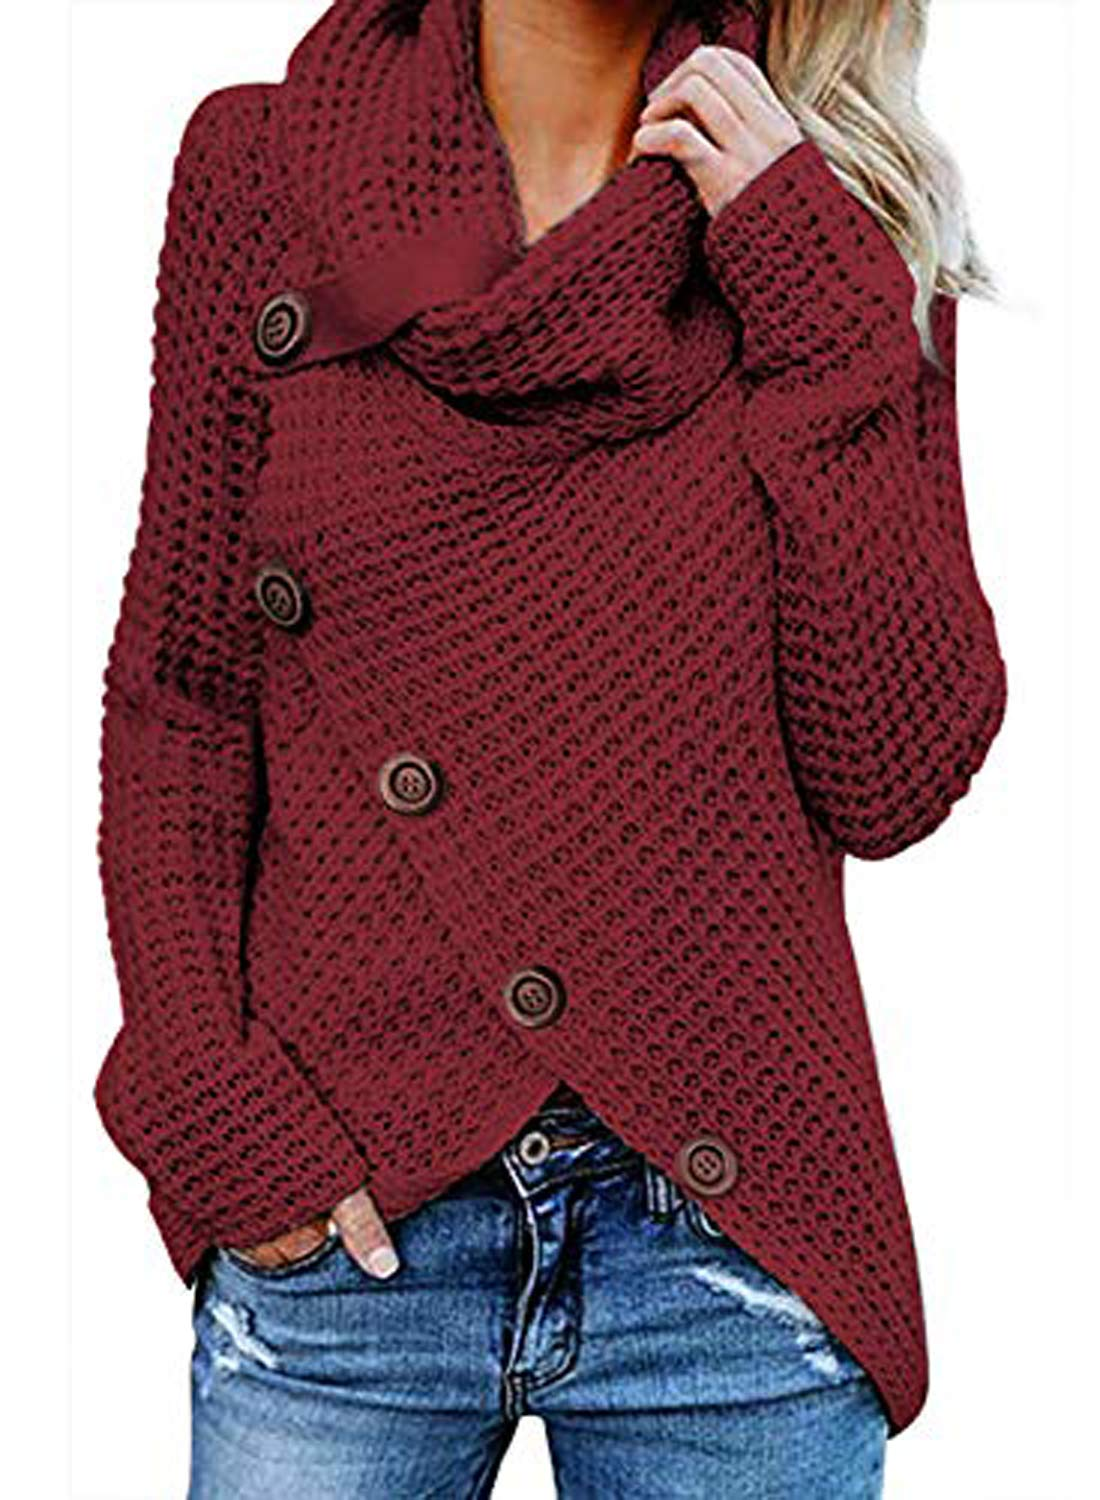 Itsmode Womens Casual Chunky Turtle Cowl Neck Long Sleeve Knit Wrap Asymmetric Hem Button Comfy Cardigans Sweater Coat Tops Red Small by Itsmode